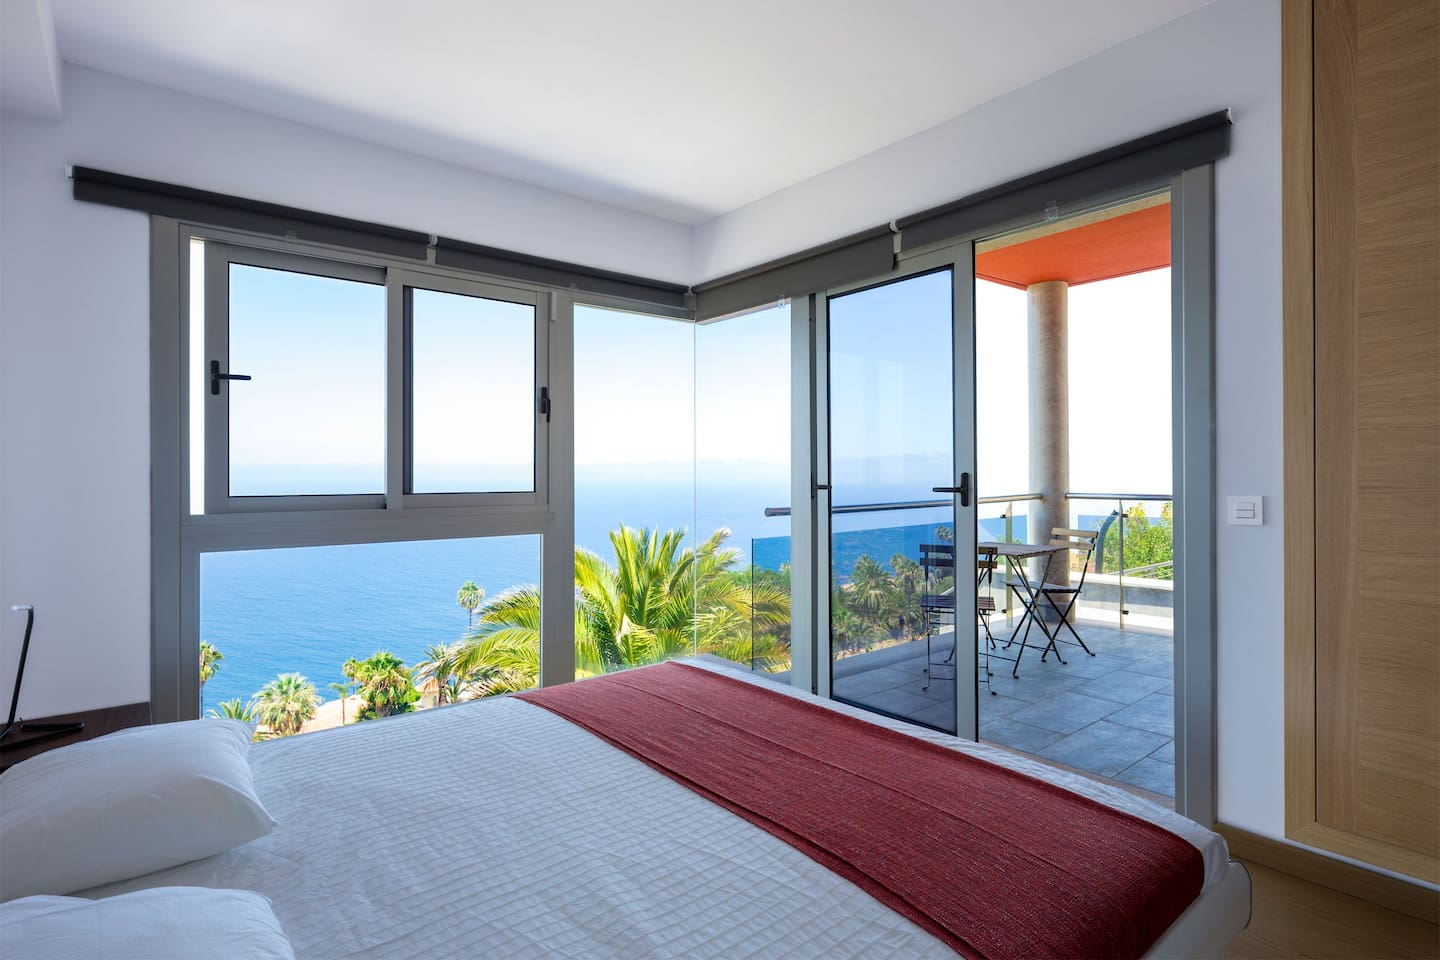 Master bedroom views